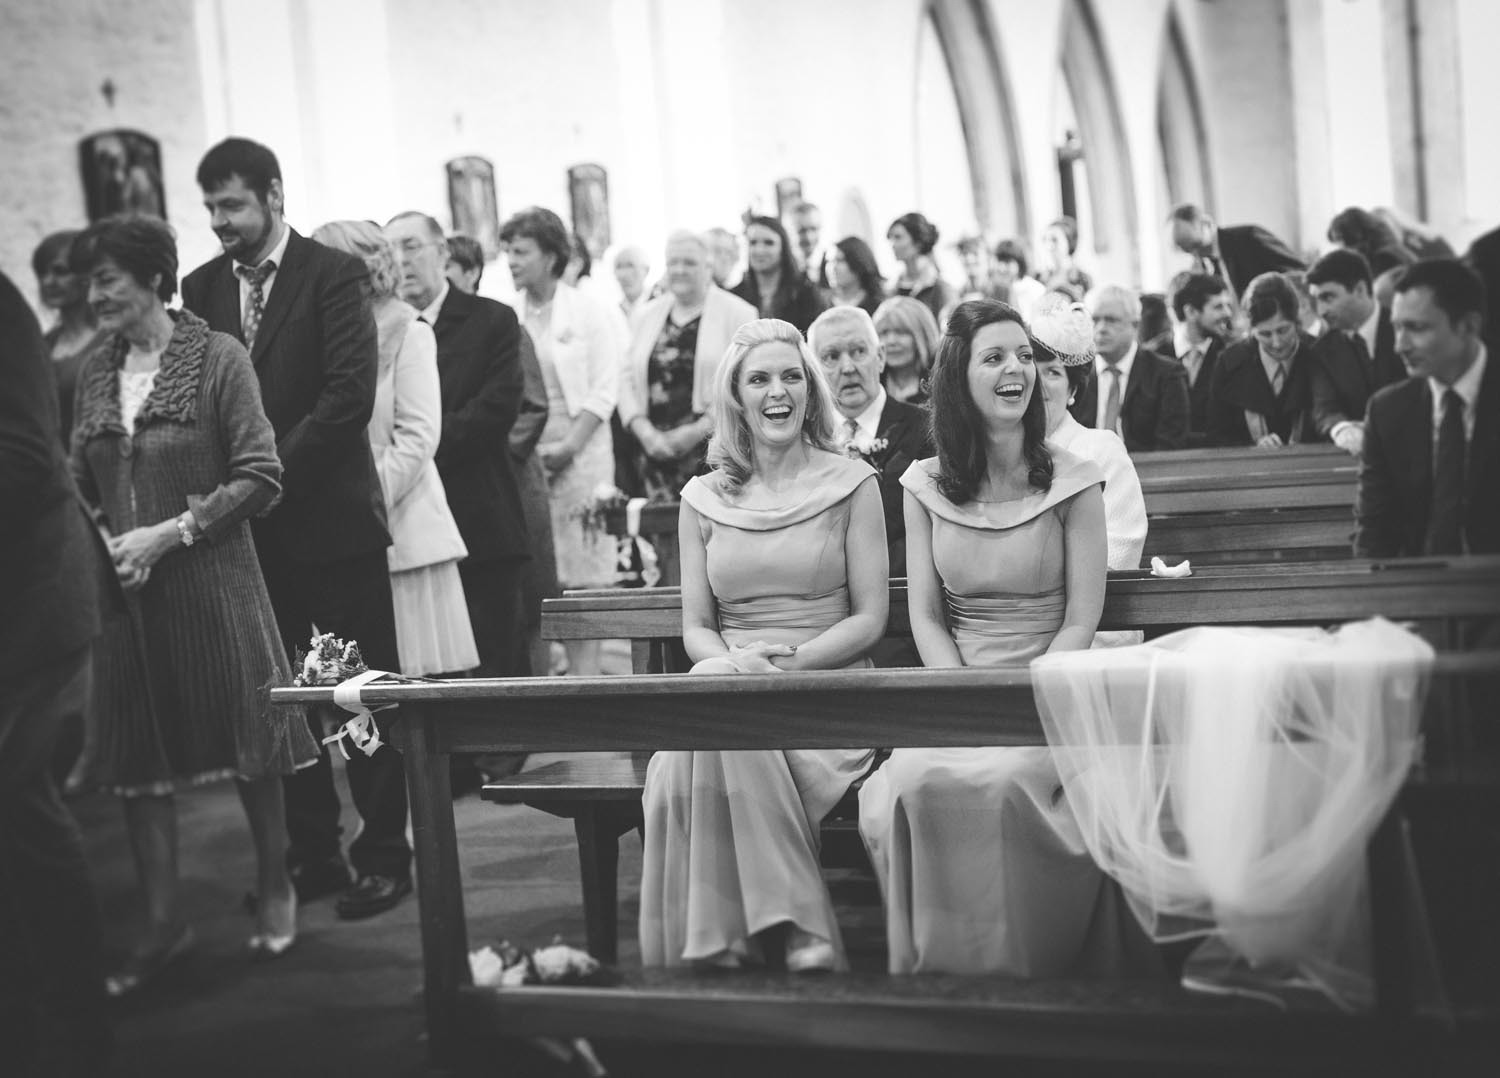 Step House wedding photographer Carlow Borris054.jpg